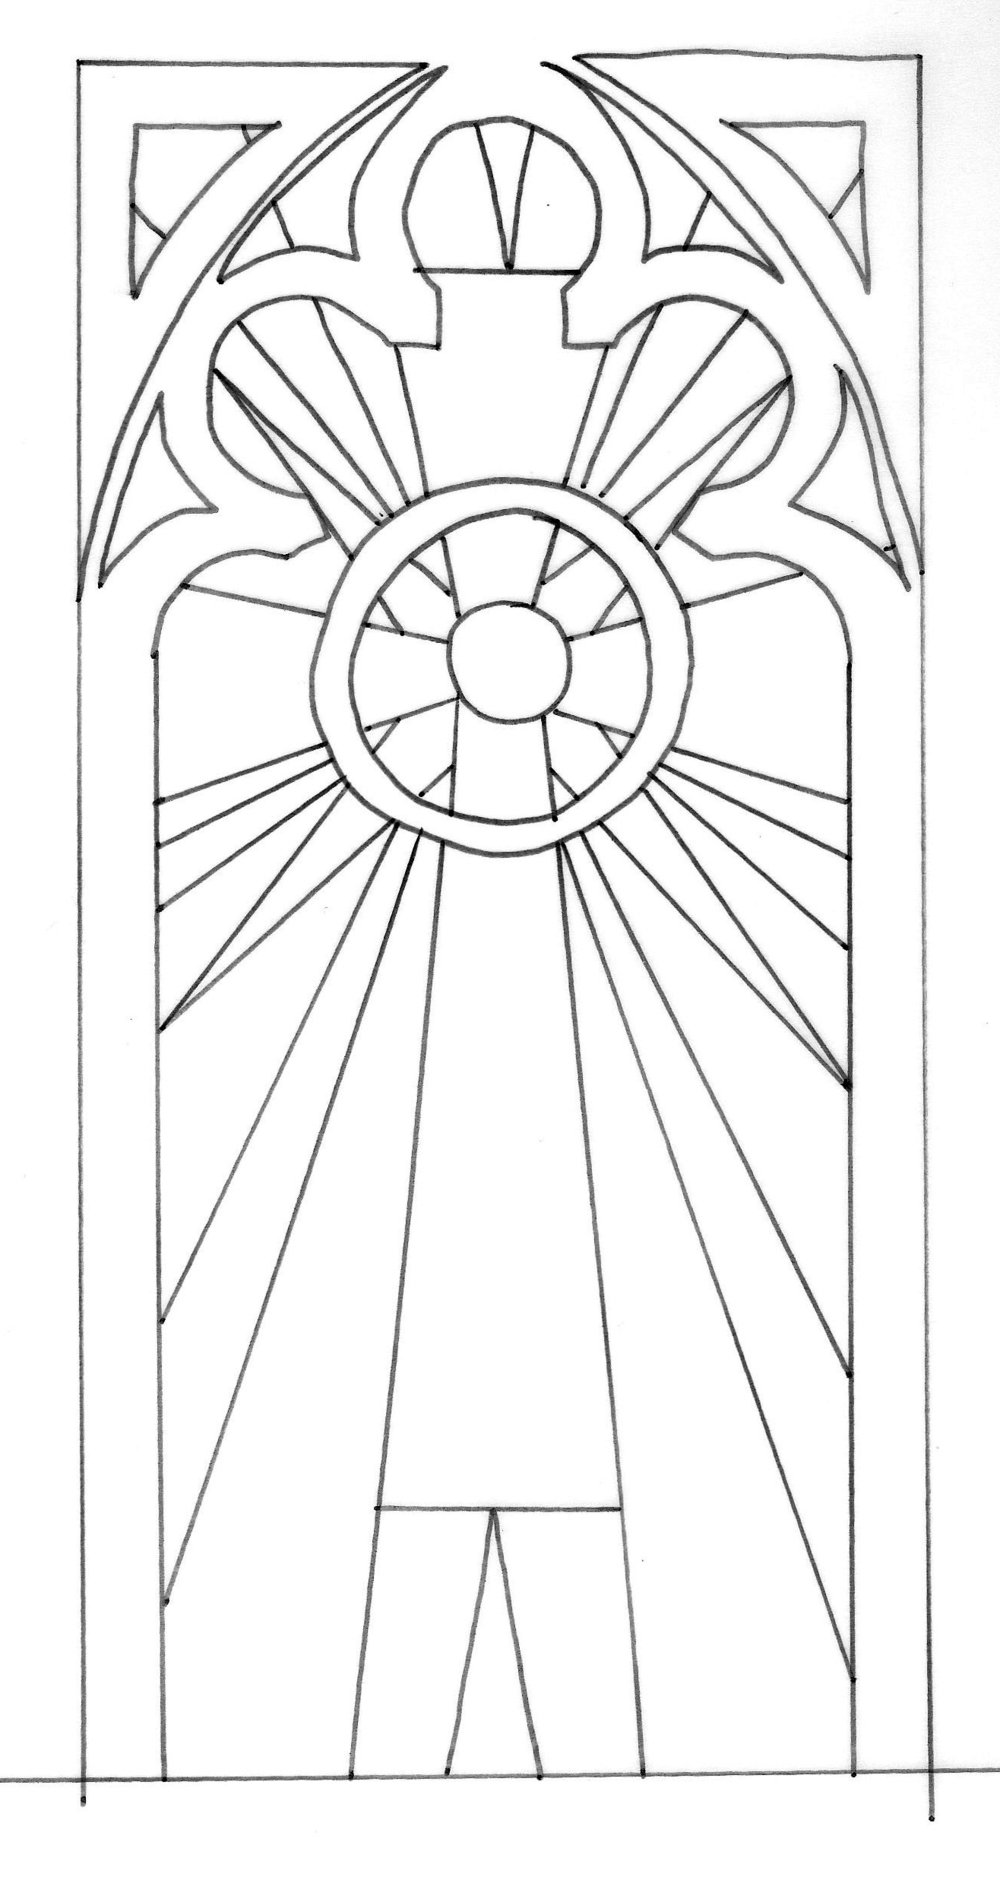 Church_Window_design_bespoke_etchedglass6.jpeg